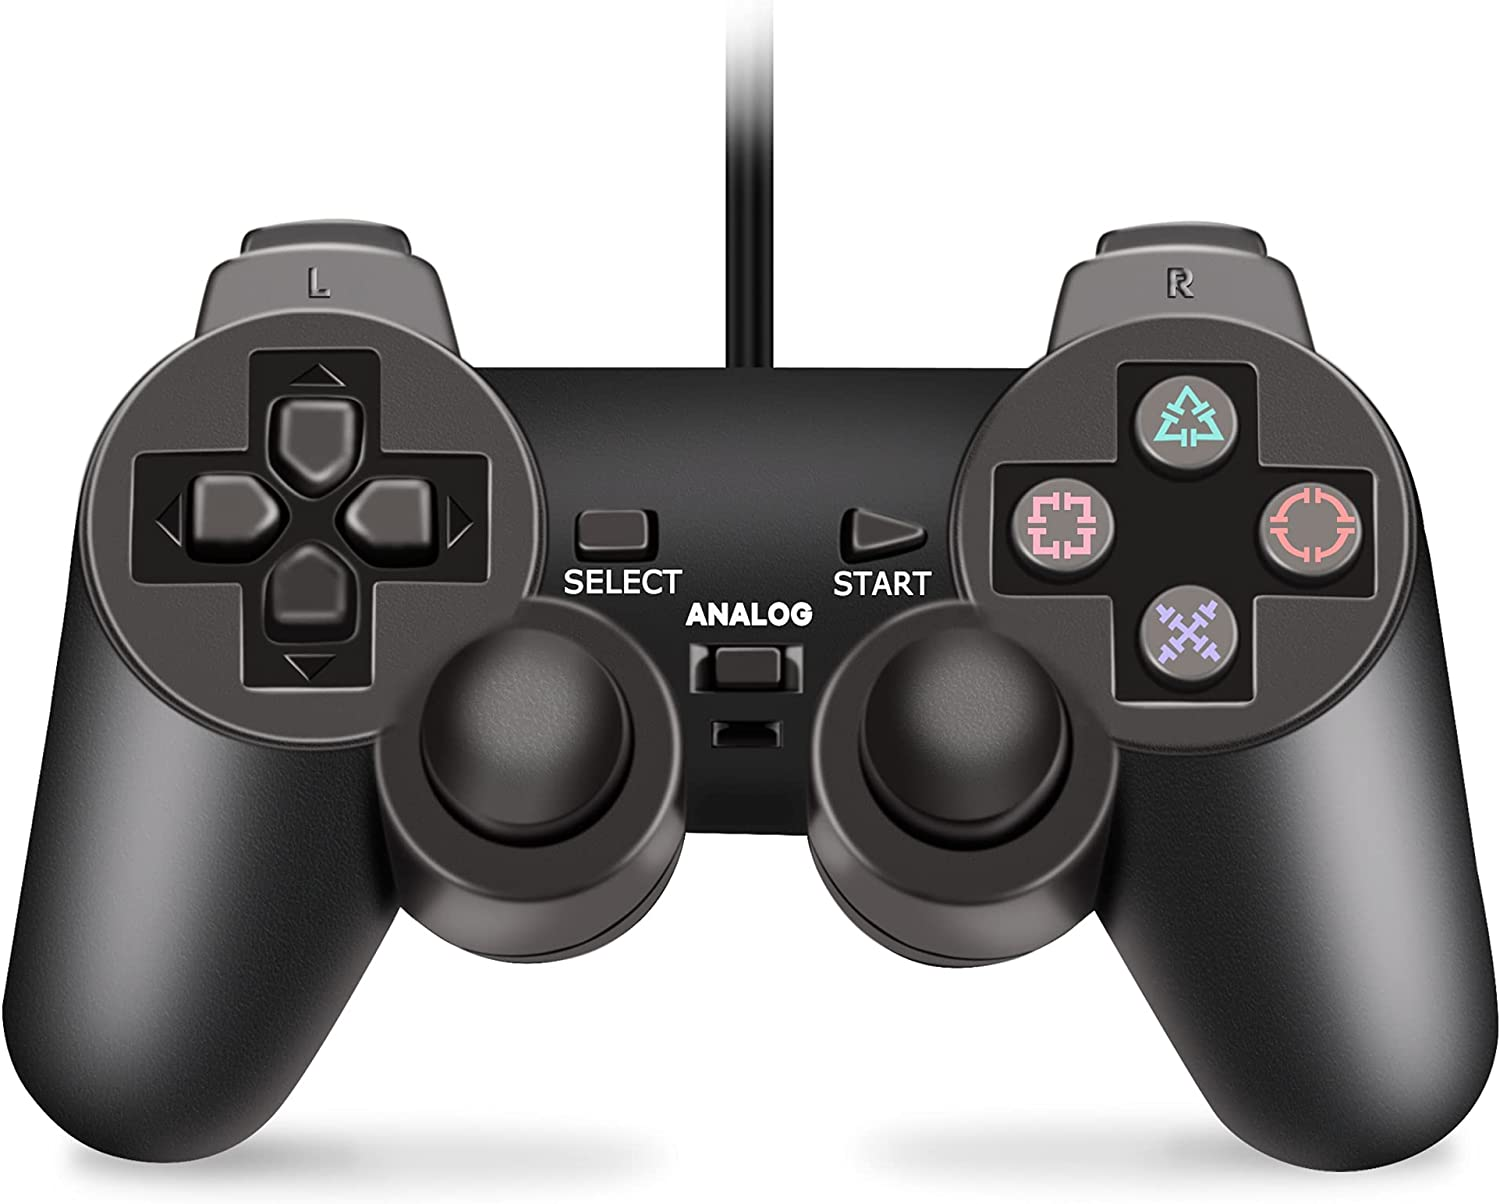 Wired Controller for PS2 Console, Dual Vibration Game Controller Gamepad Remote for Playstation 2 PS2 with Long Cable Black